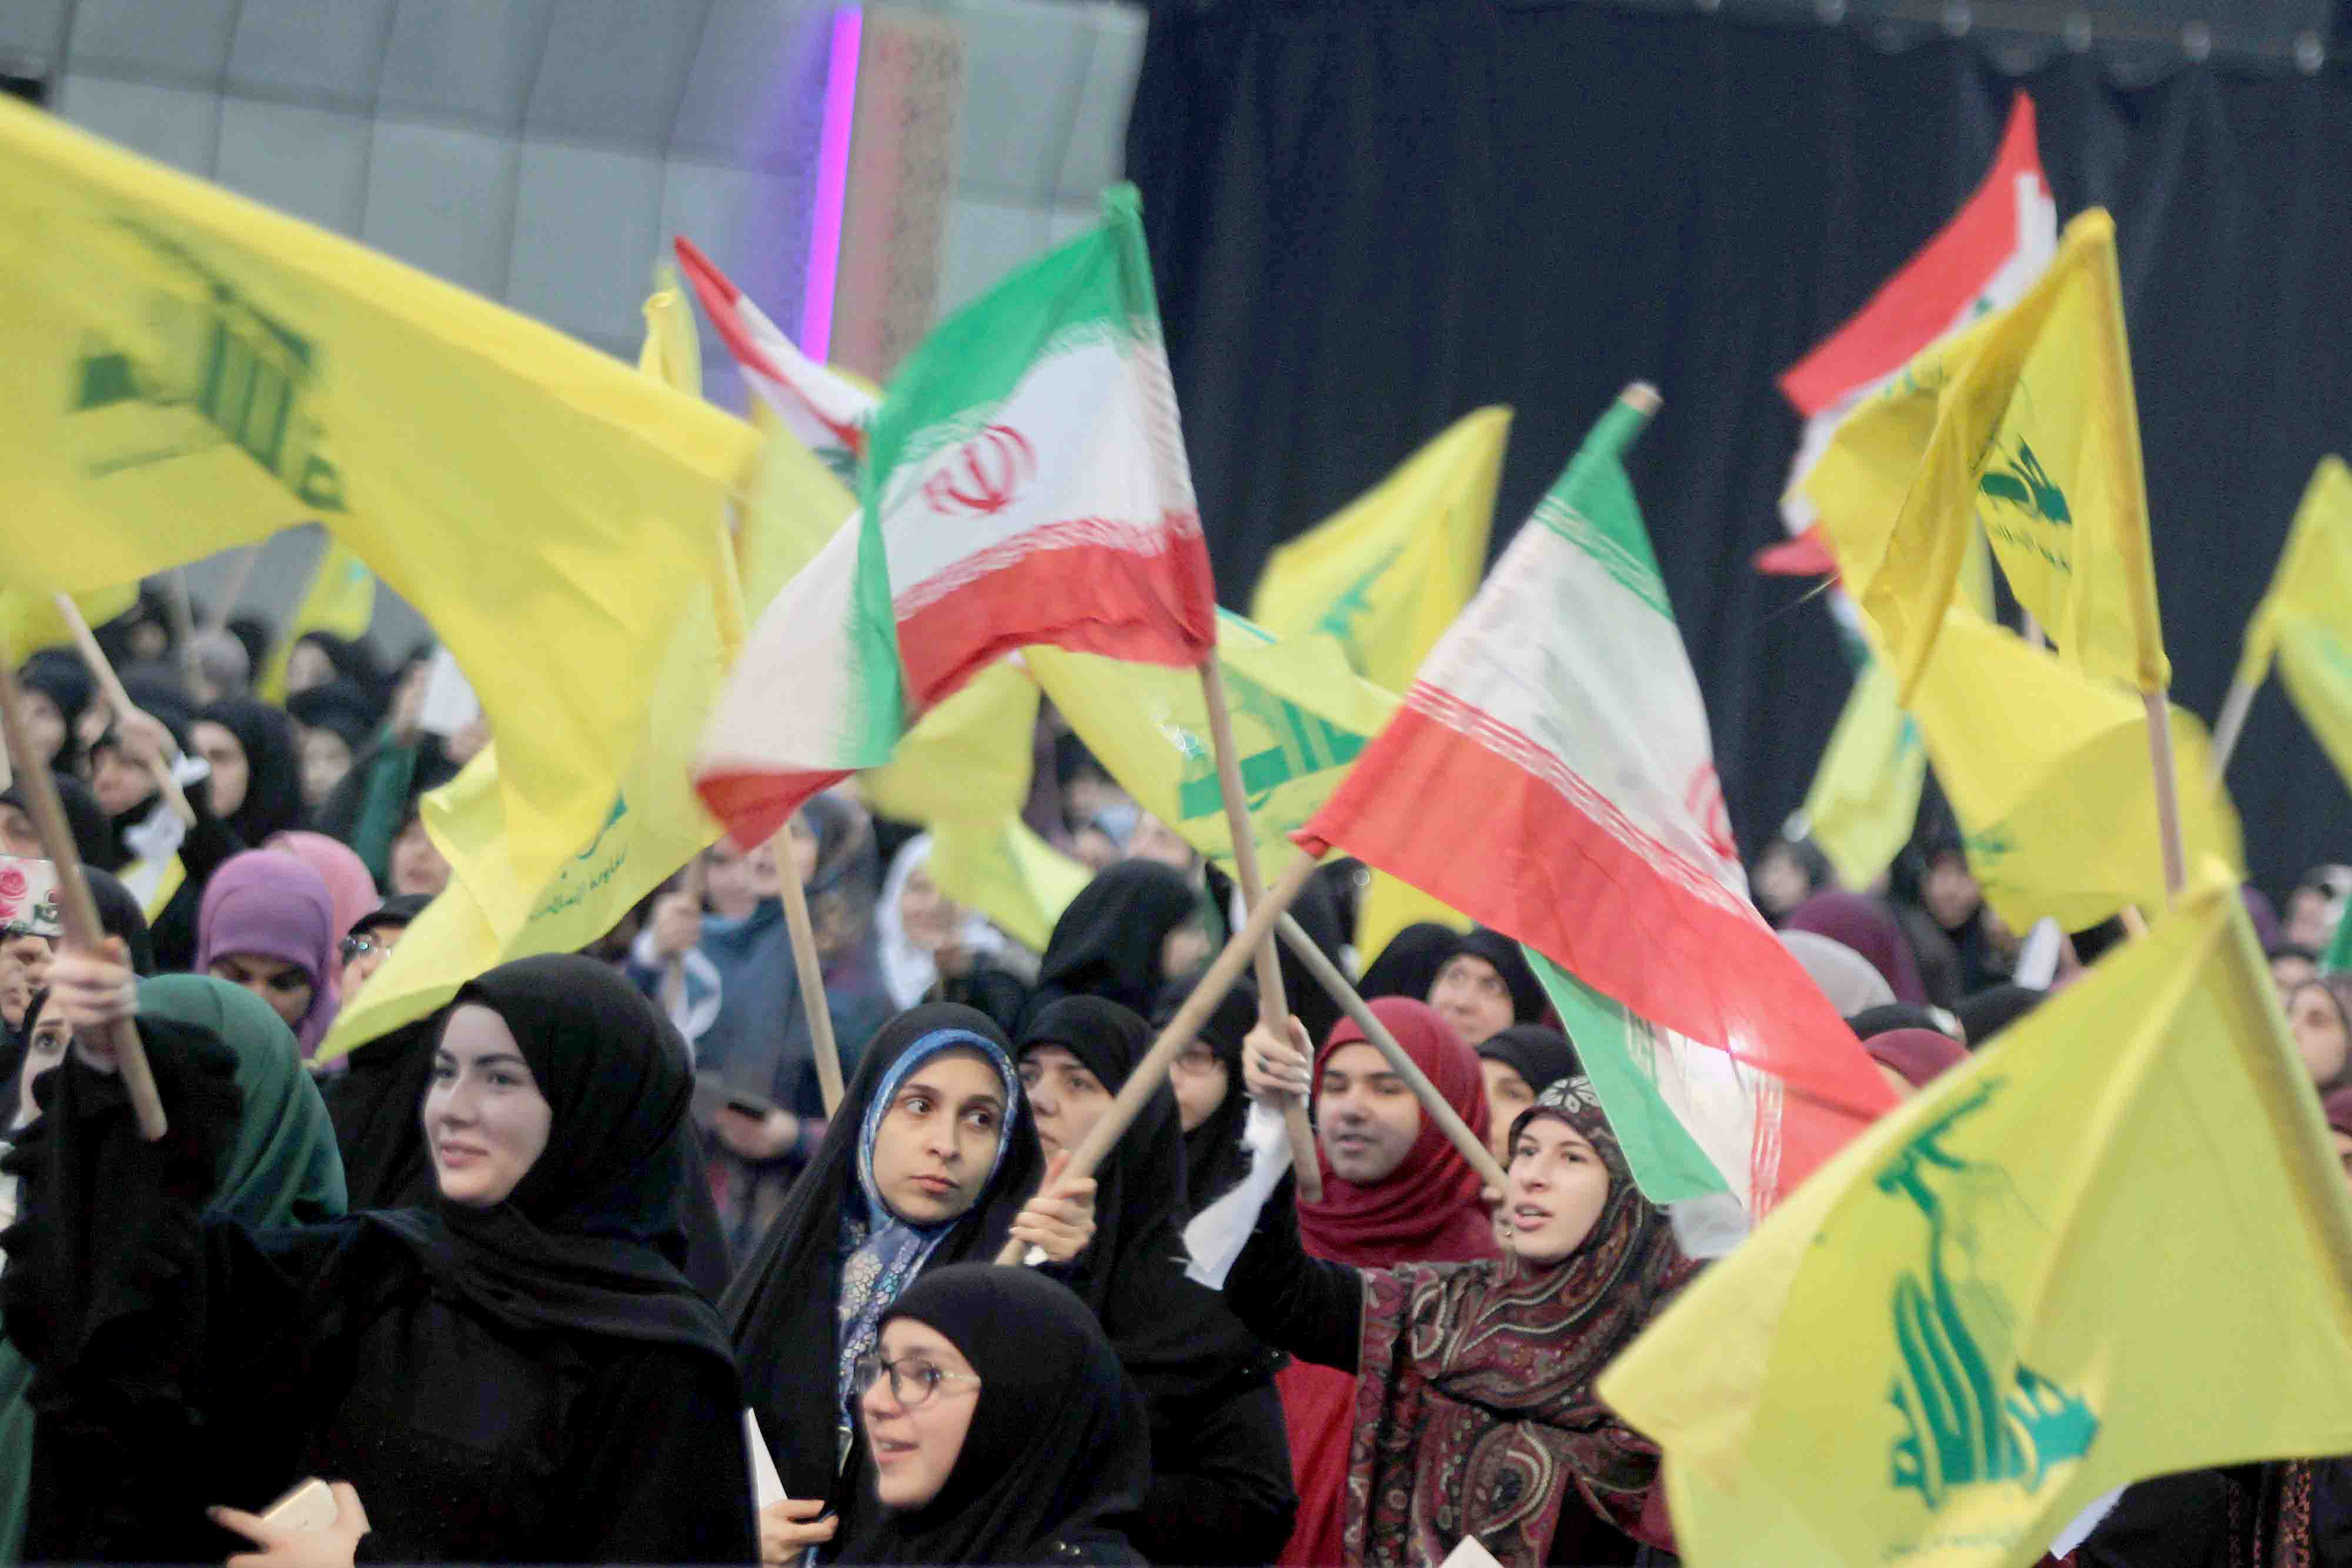 Hezbollah supporters wave flags of Iran and their Shia group during a rally to mark the anniversary of the Iranian Islamic Revolution, February 6. (DPA)